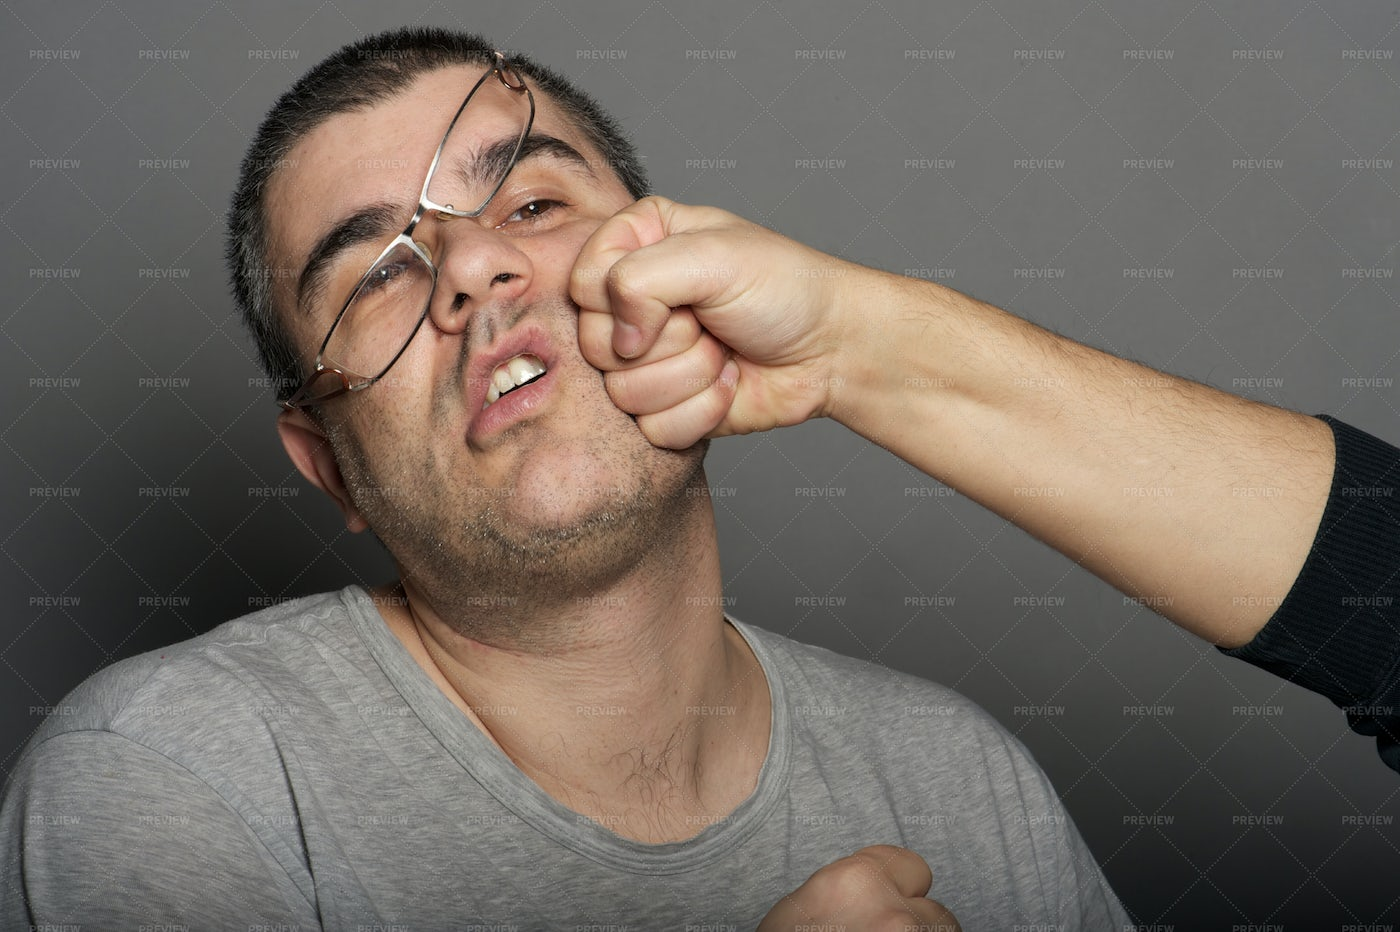 Punch In The Face: Stock Photos